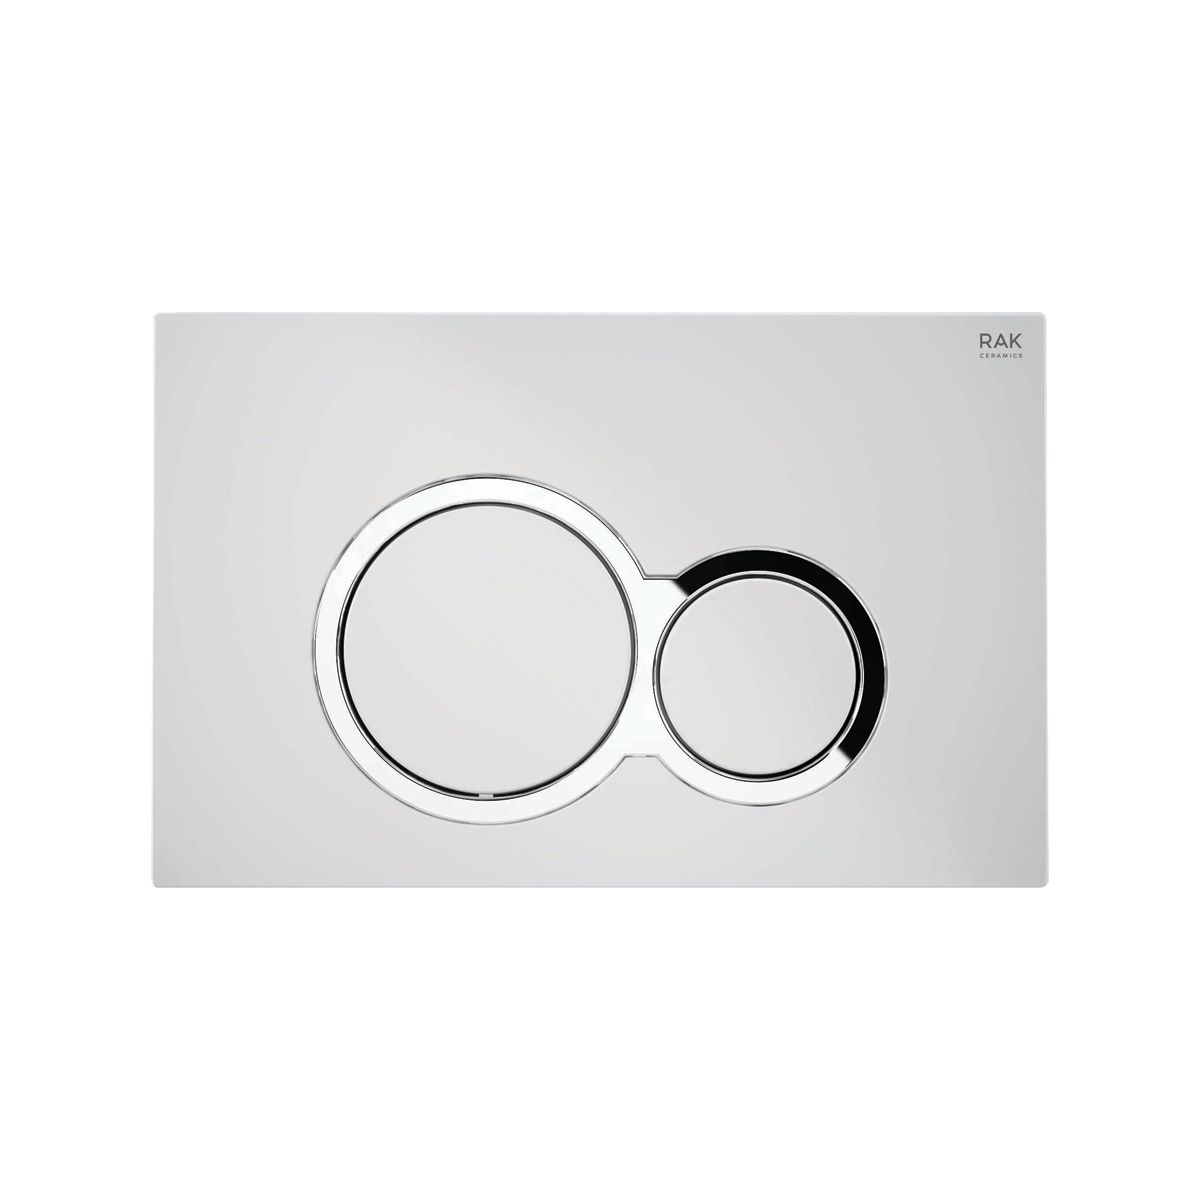 RAK Ecofix White Flush Plate with Surrounded Round Push Buttons